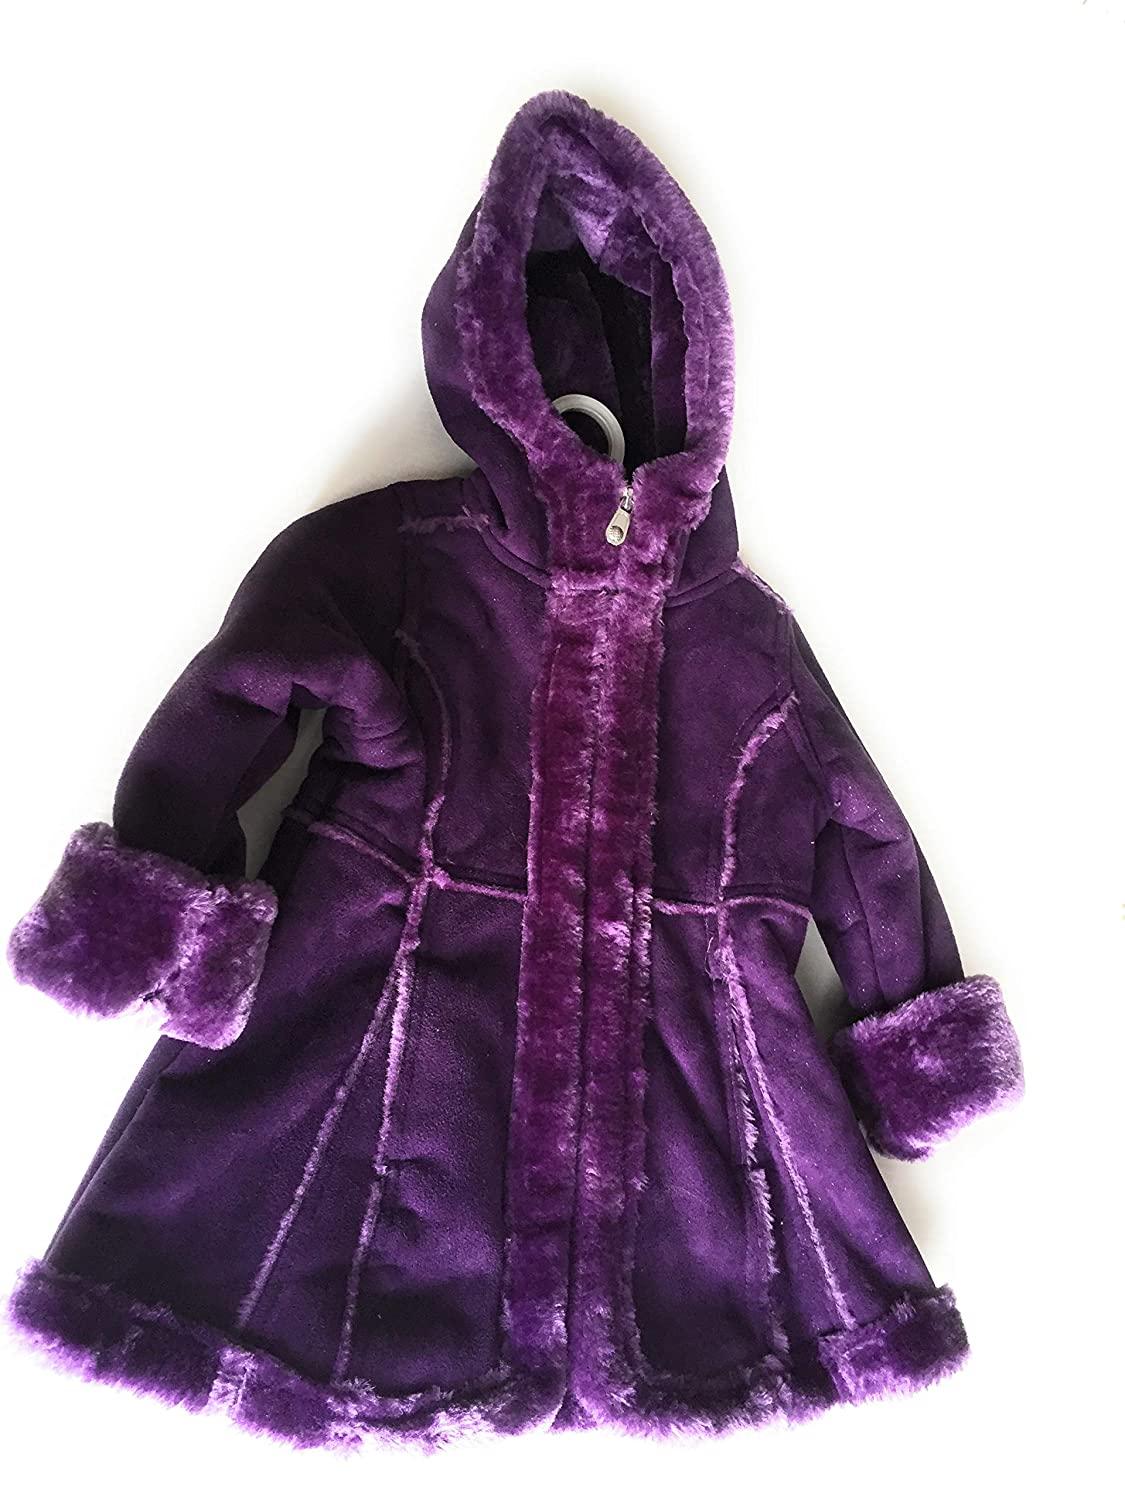 Hemisphere Girls Jacket 3T